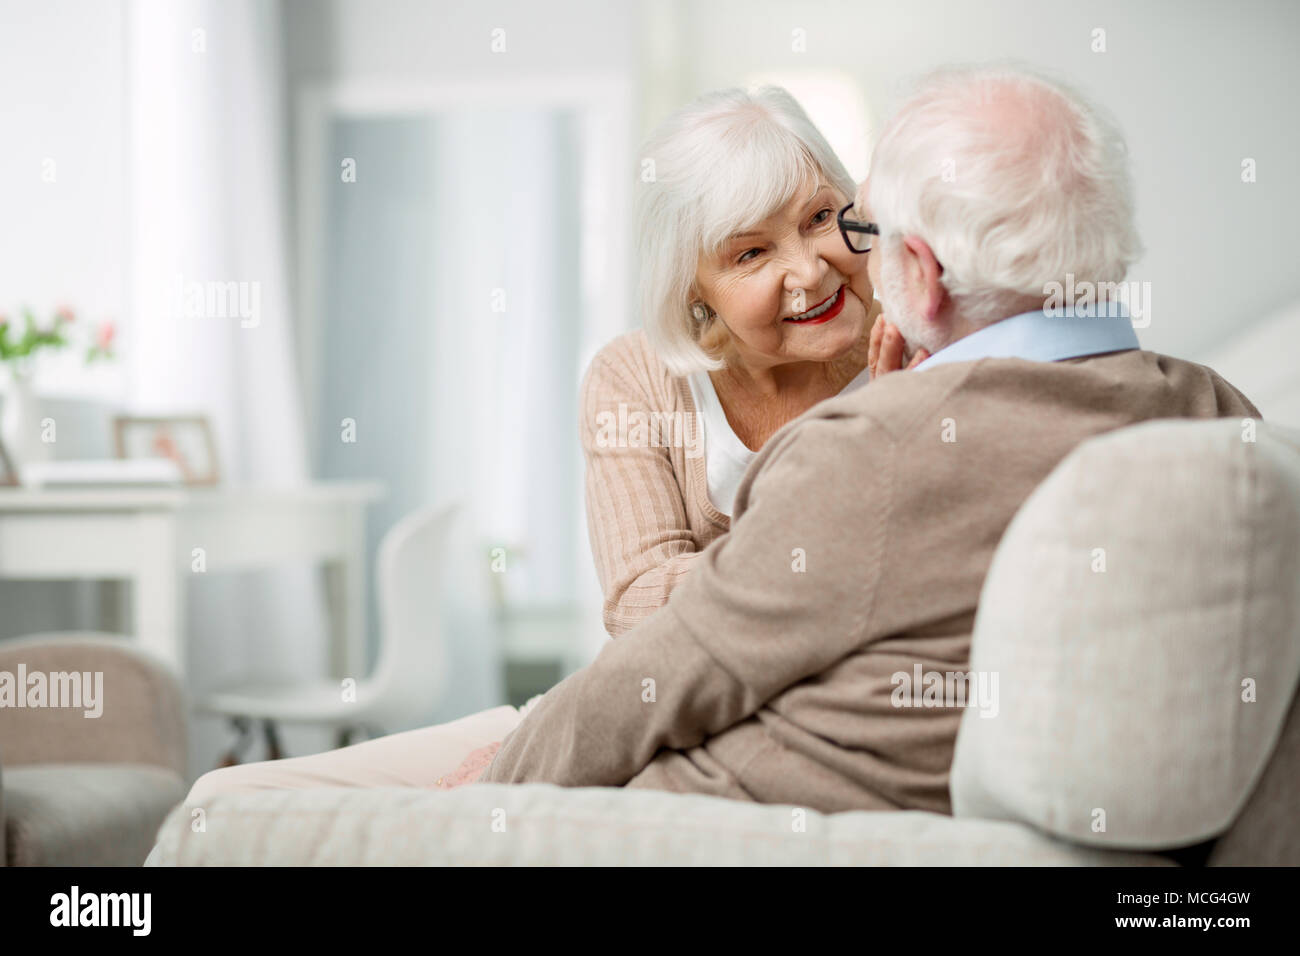 Pleasant elderly woman having a conversation with her husband - Stock Image